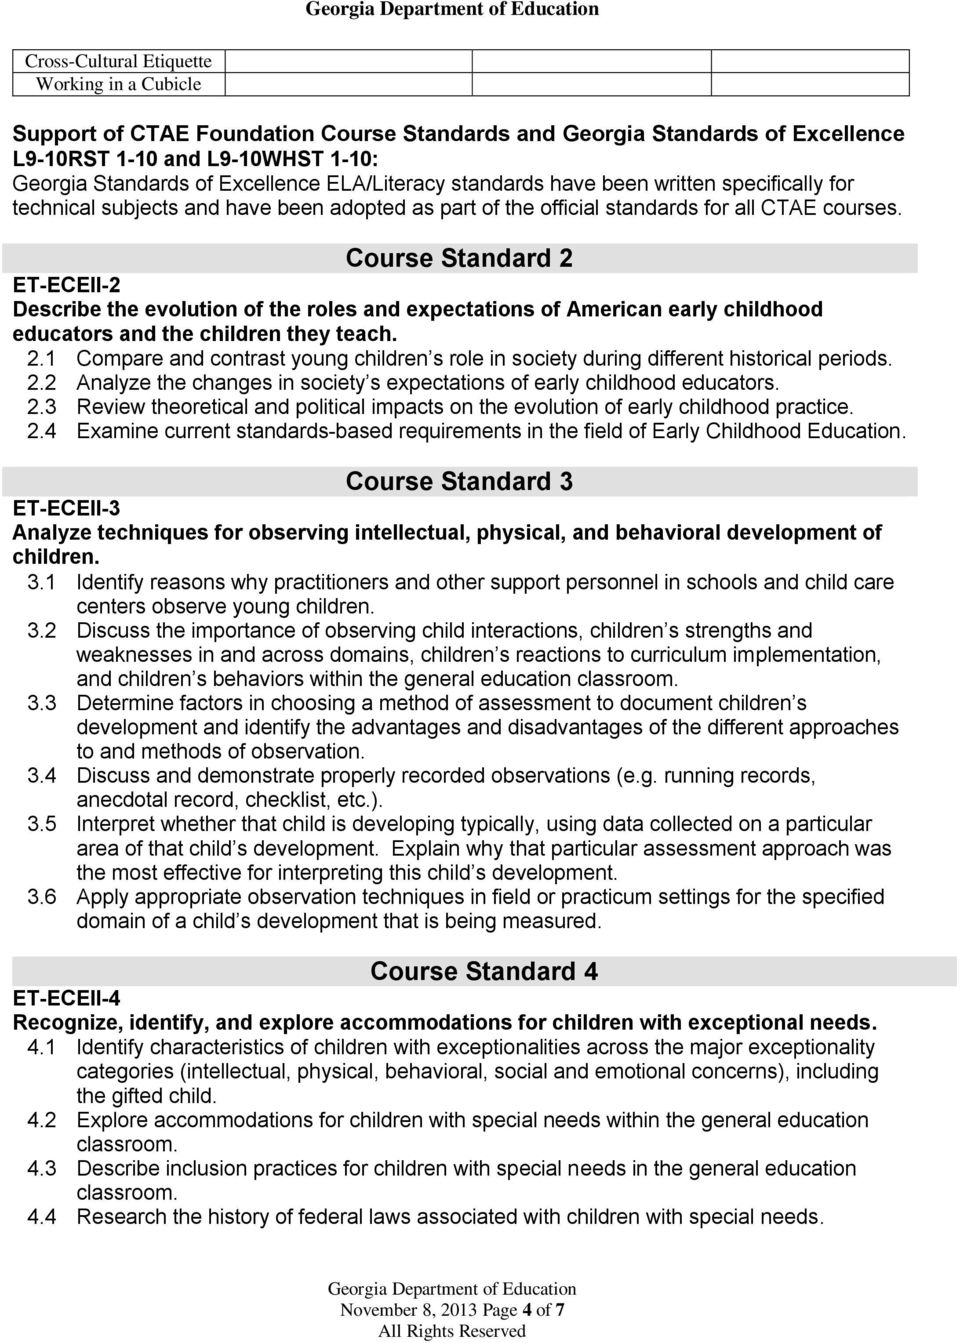 Course Standard 2 ET-ECEII-2 Describe the evolution of the roles and expectations of American early childhood educators and the children they teach. 2.1 Compare and contrast young children s role in society during different historical periods.